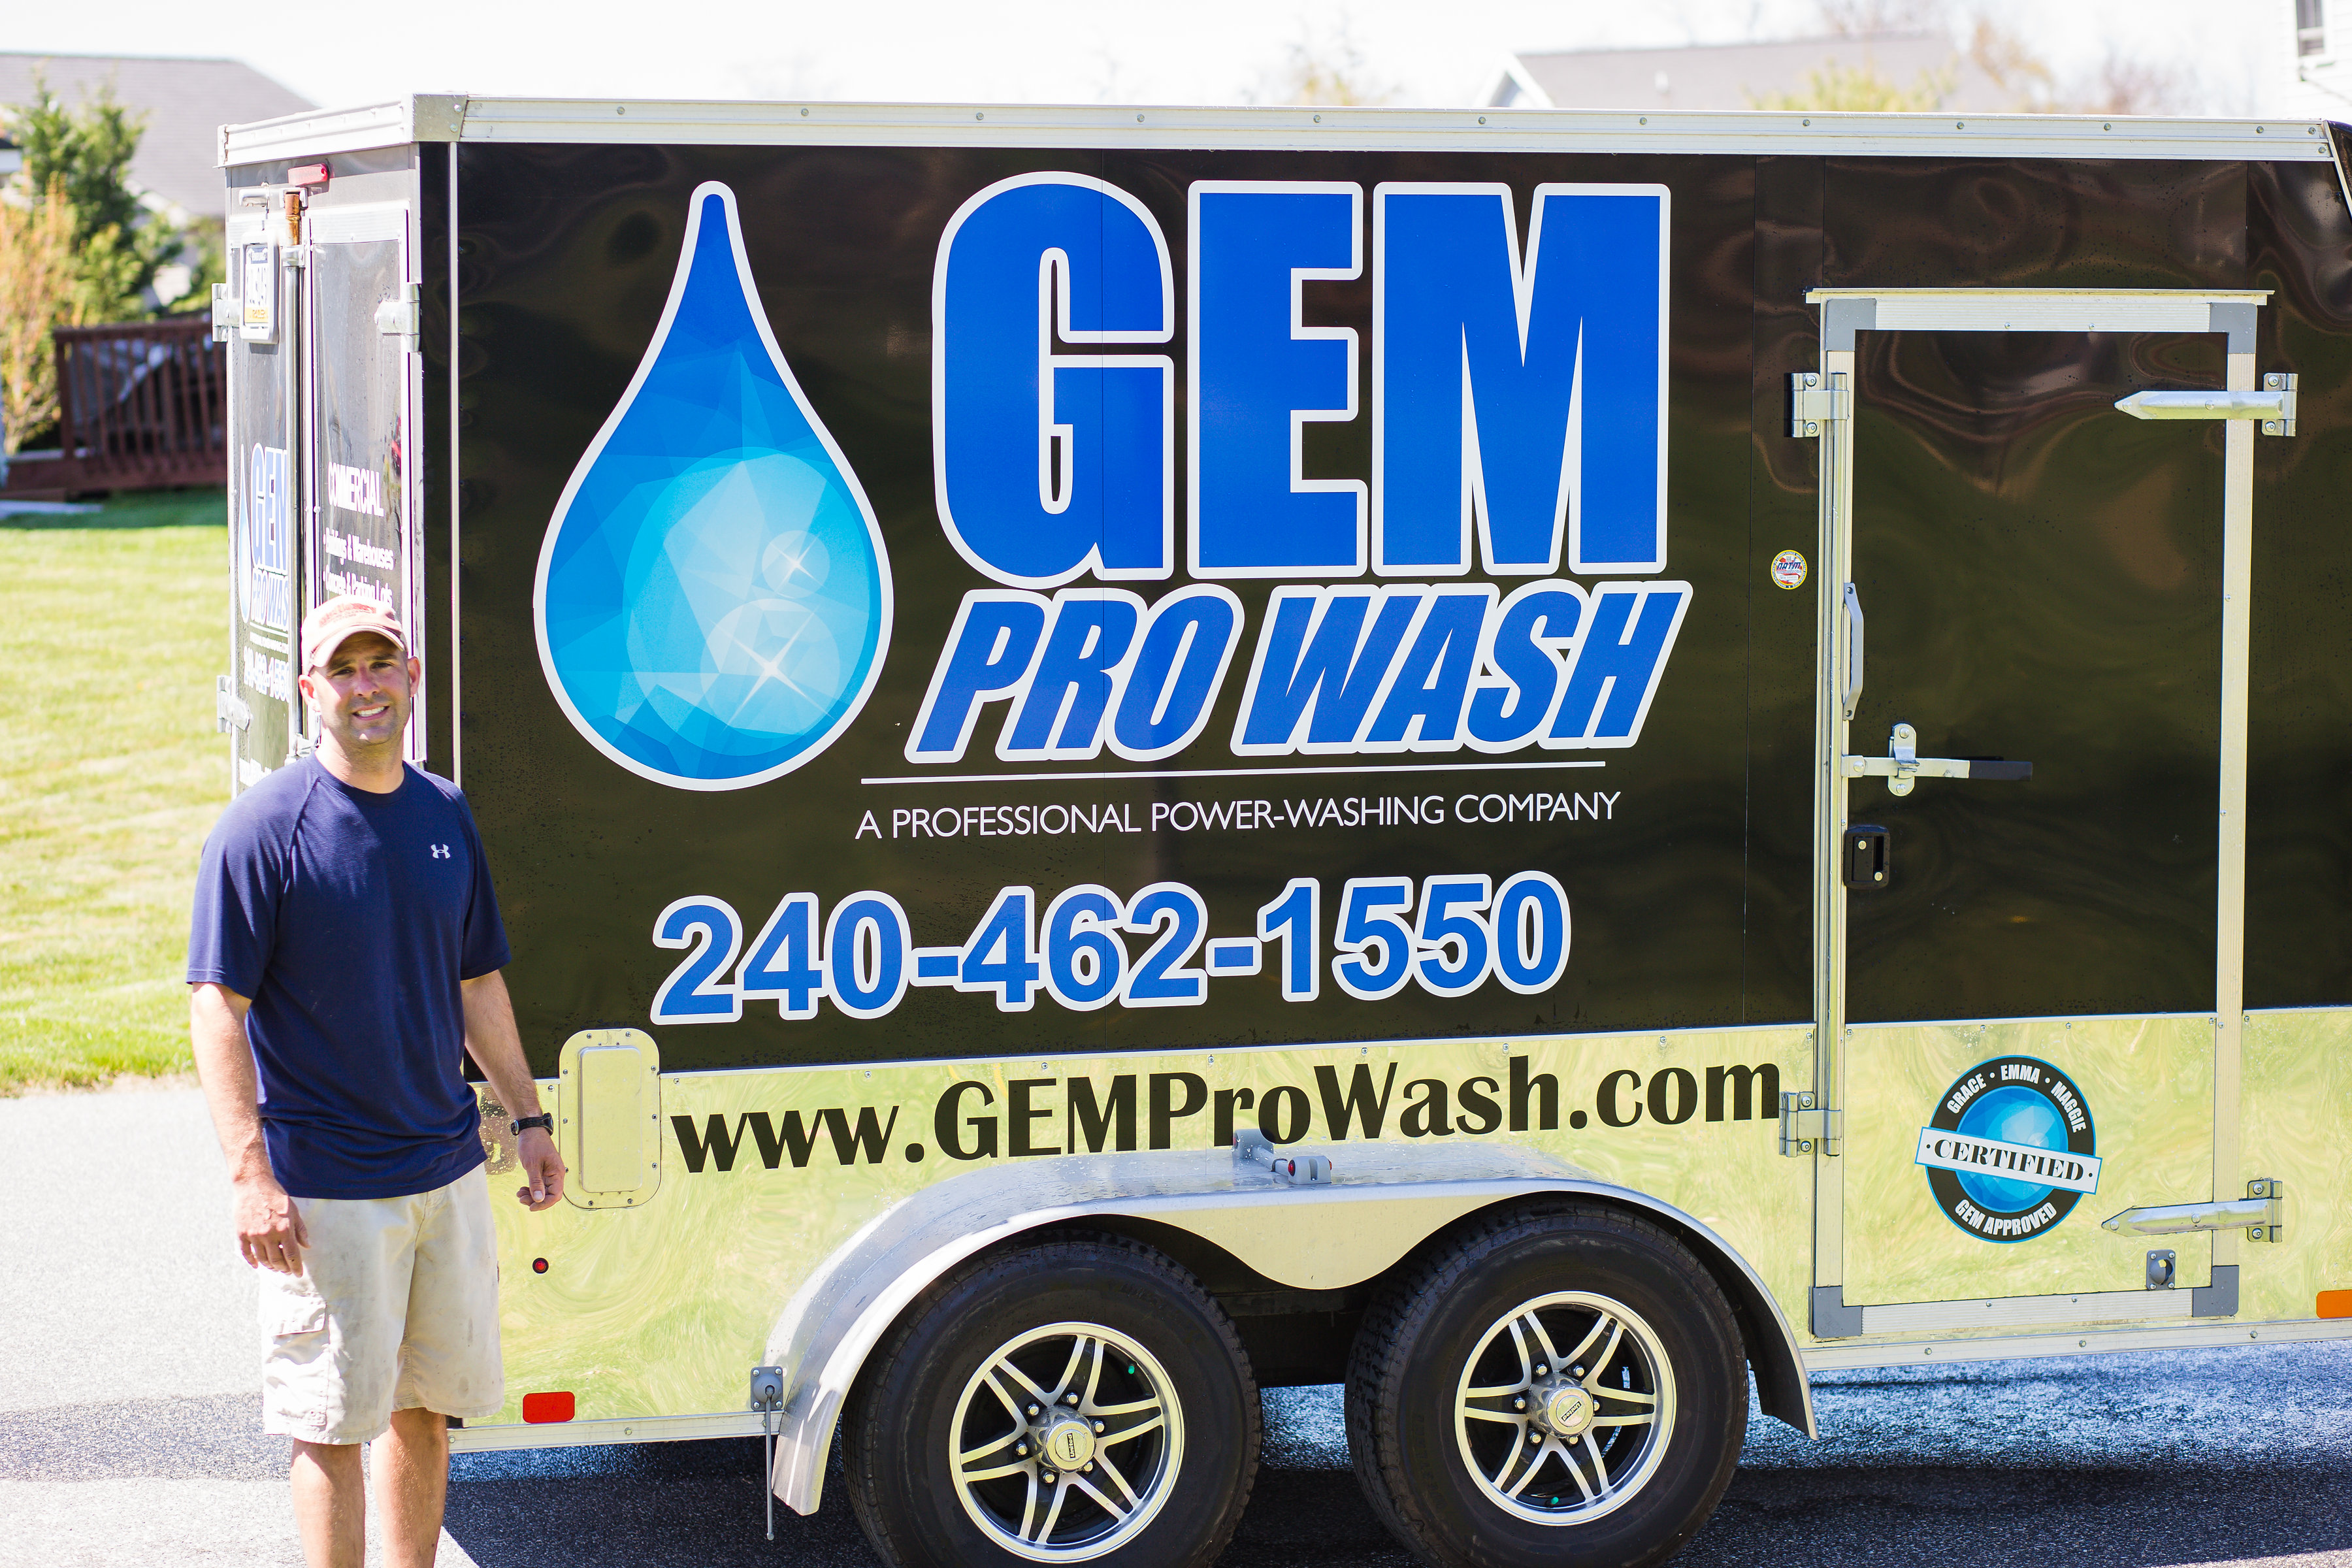 Gem Pro Wash | Soft Wash Roof Company in Martinsburg WV